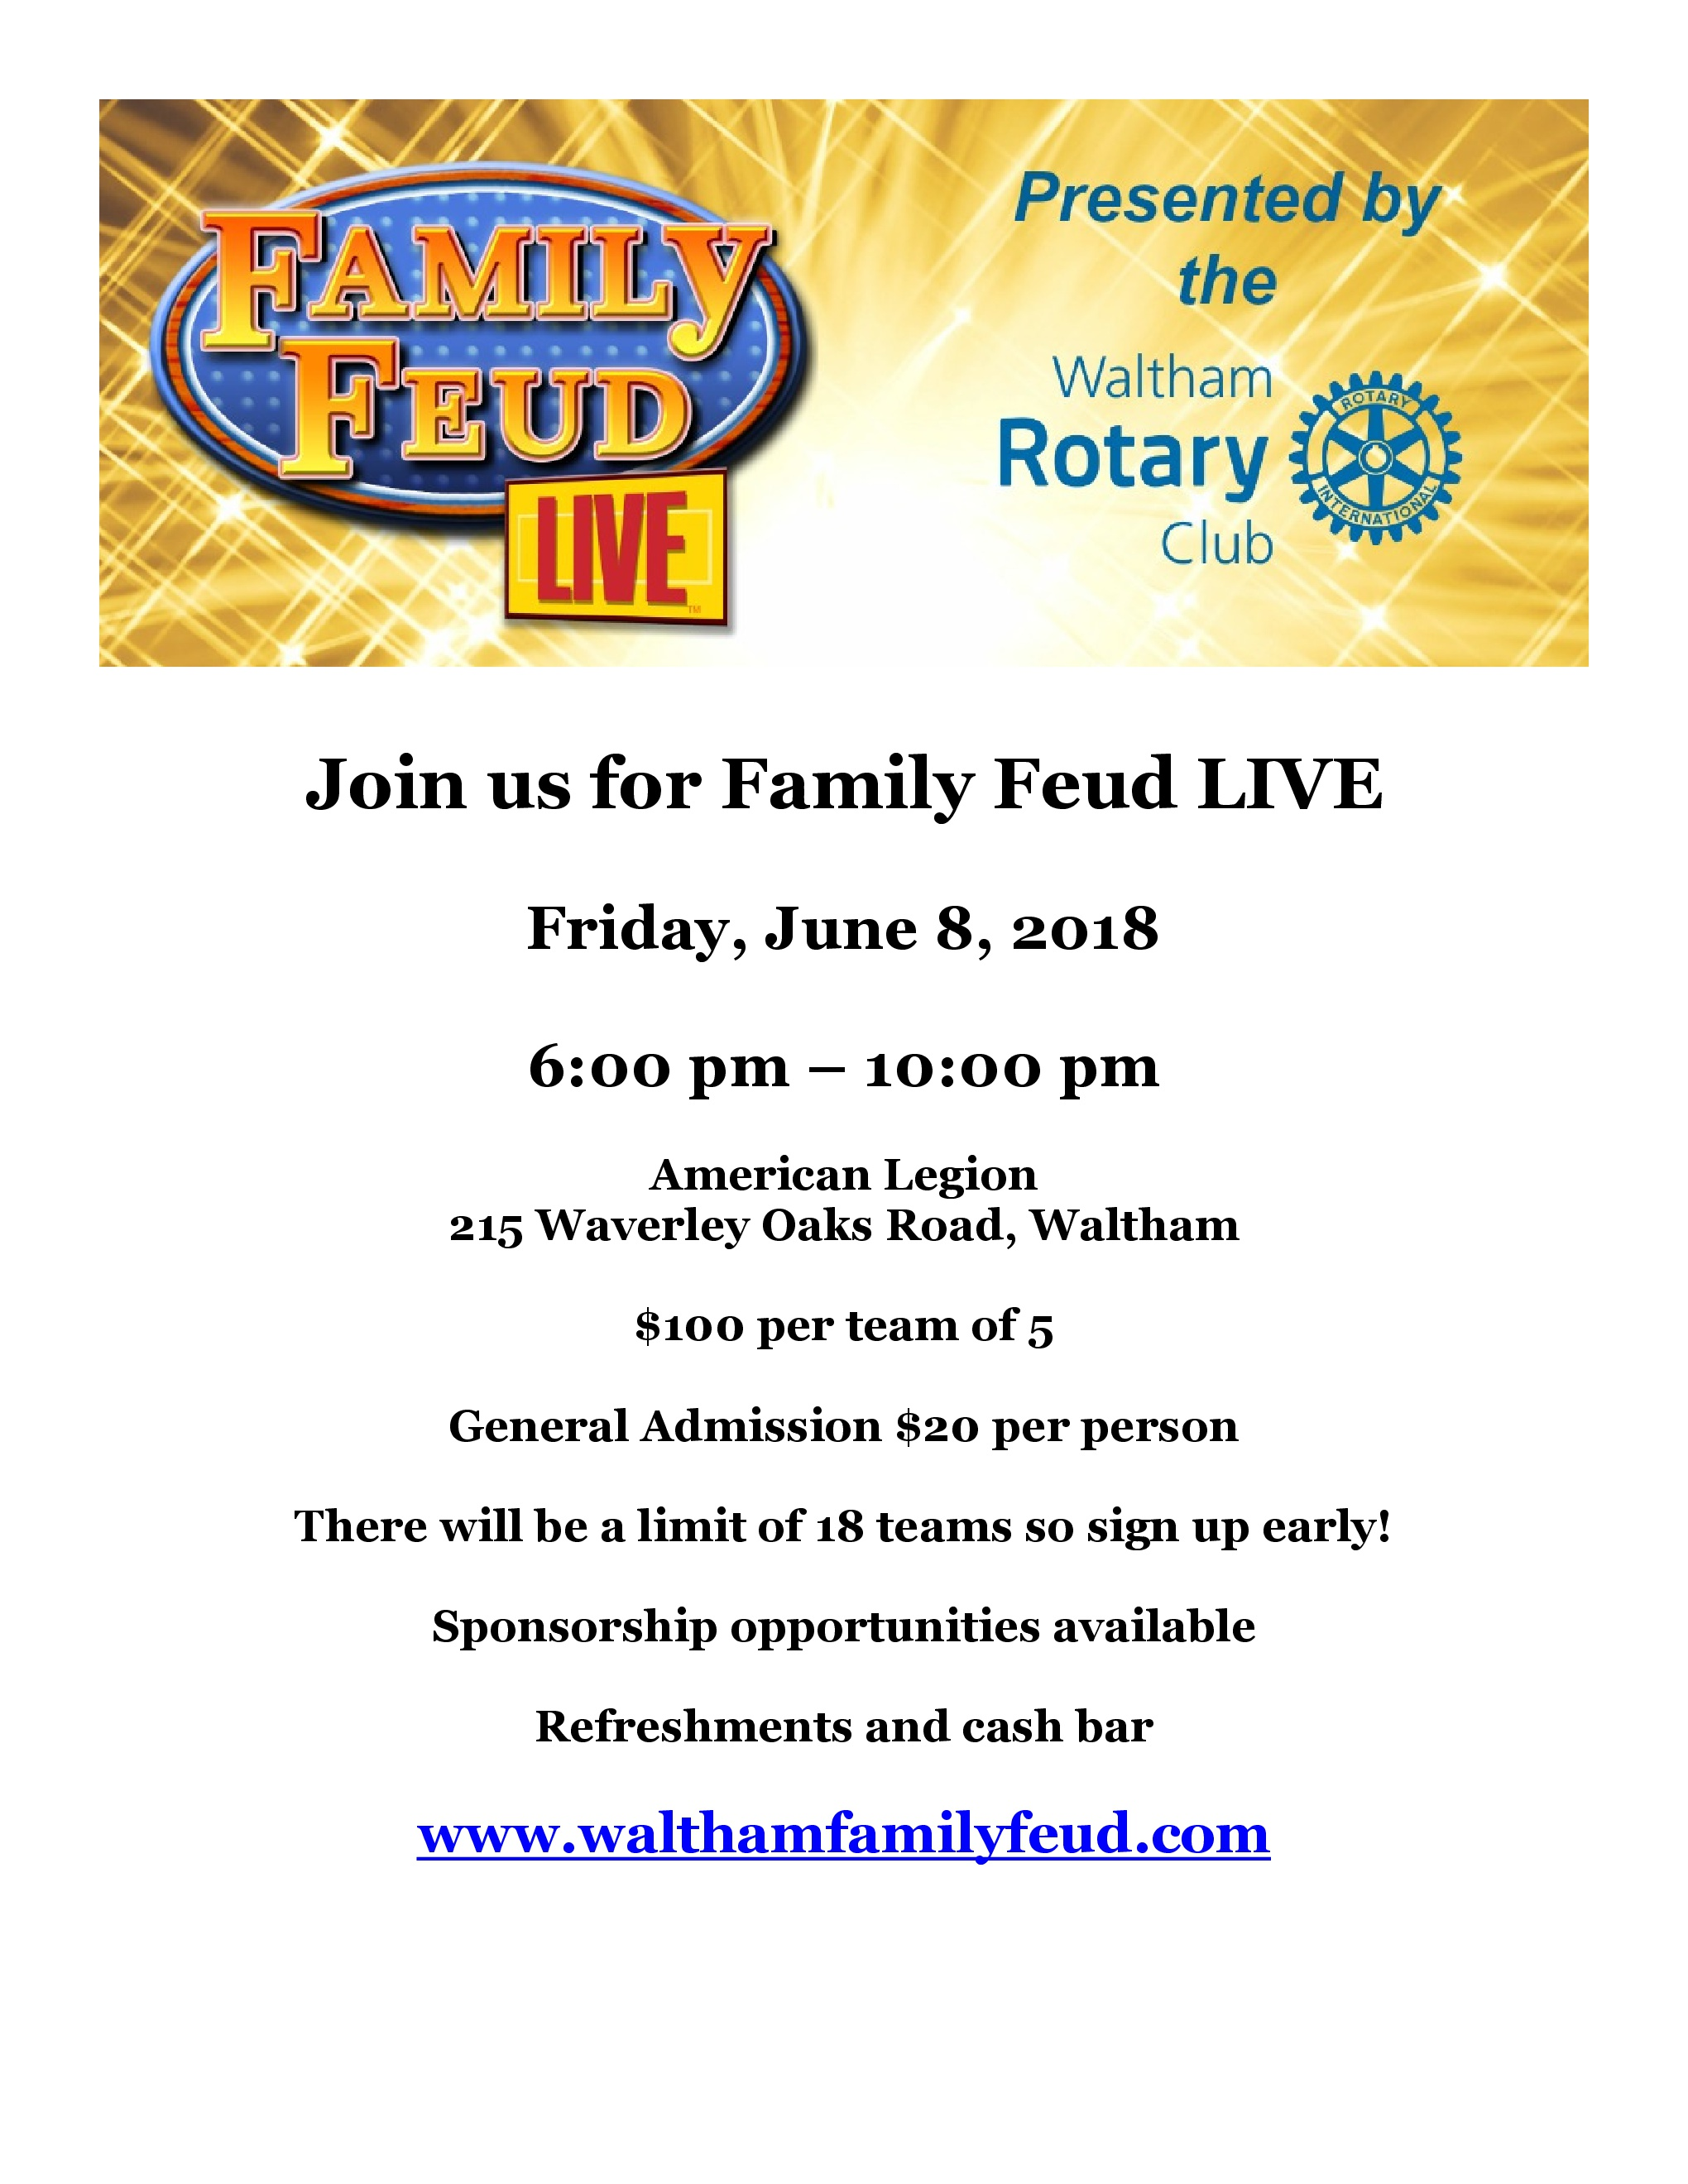 Waltham Club holds its first FAMILY FEUD fundraising event